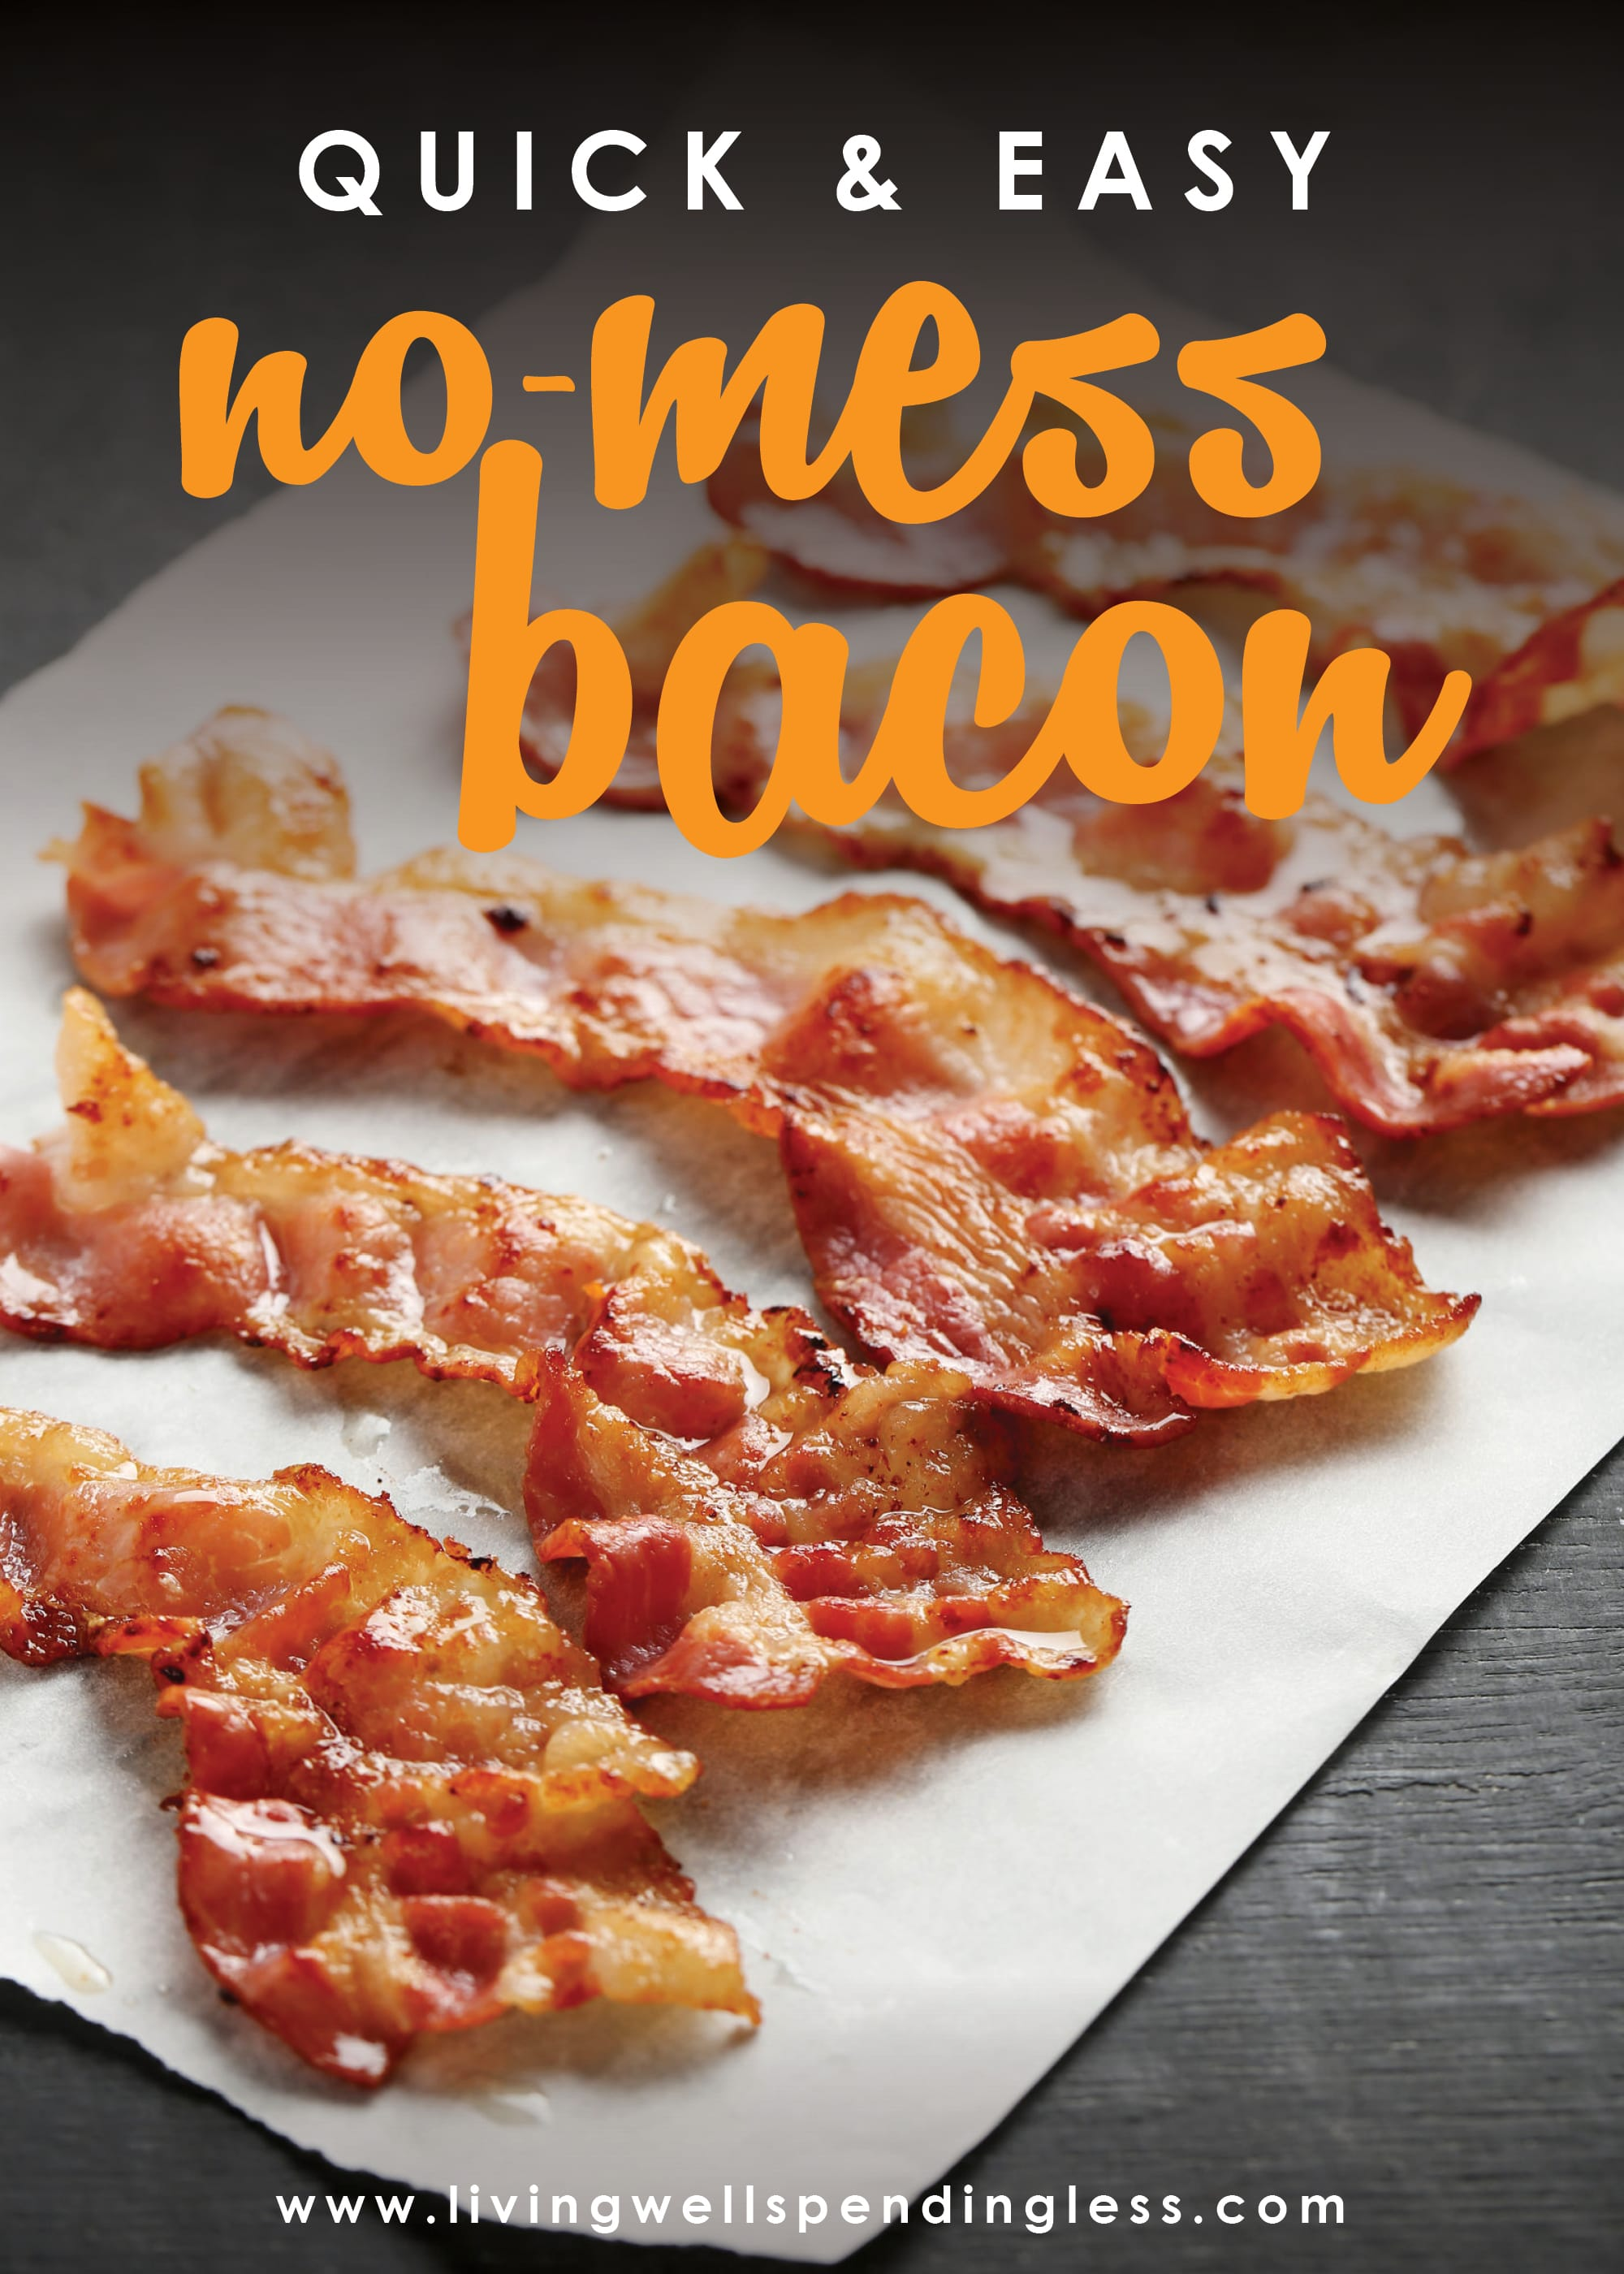 Ever avoided bacon because you hate dealing with the grease? Don't miss these simple instructions for cooking perfect no-mess bacon every single time!